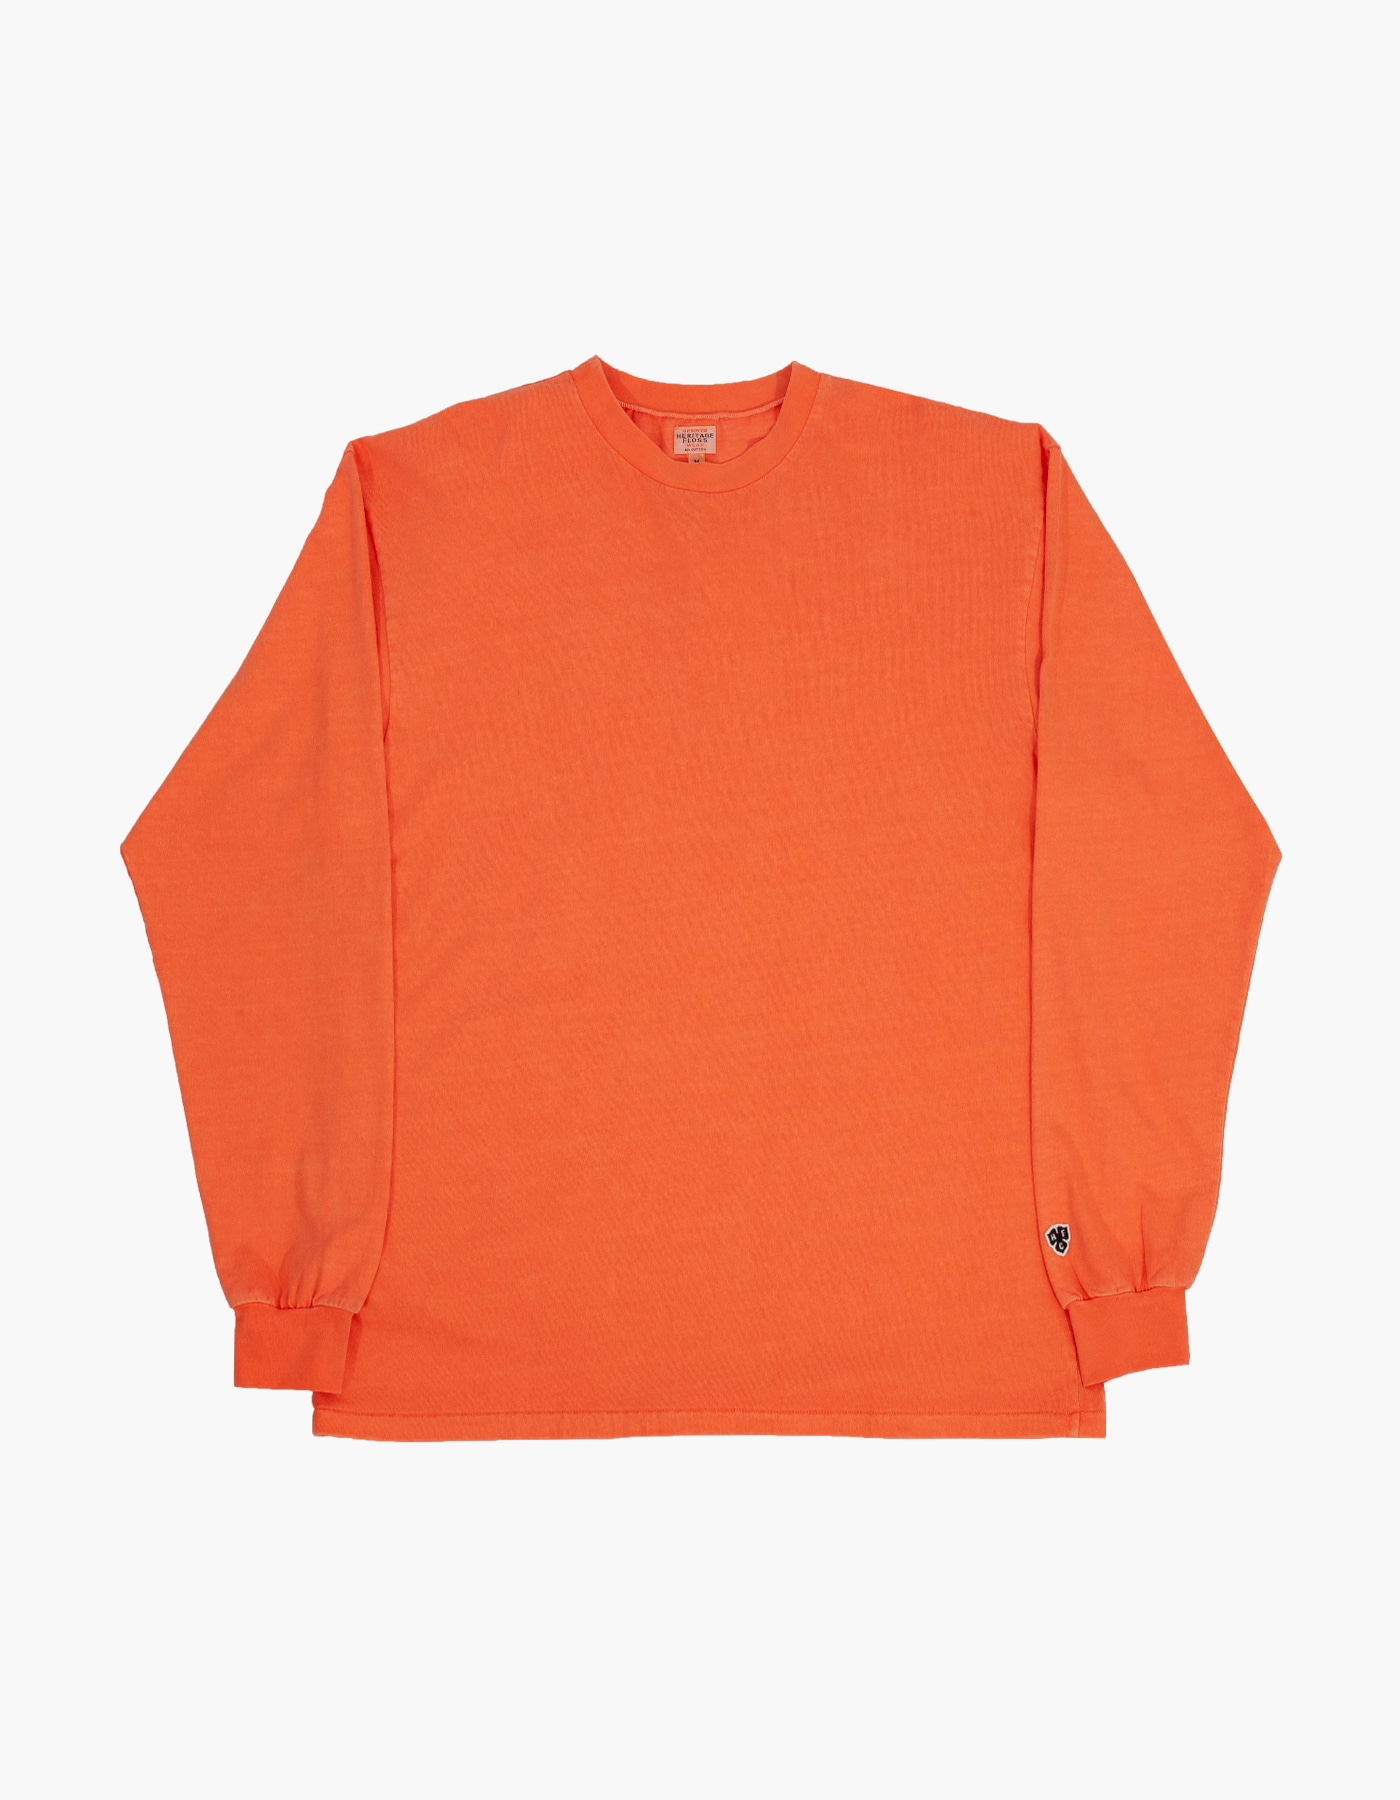 PIGMENT COMPACT YARN LONG SLEEVE / ORANGE